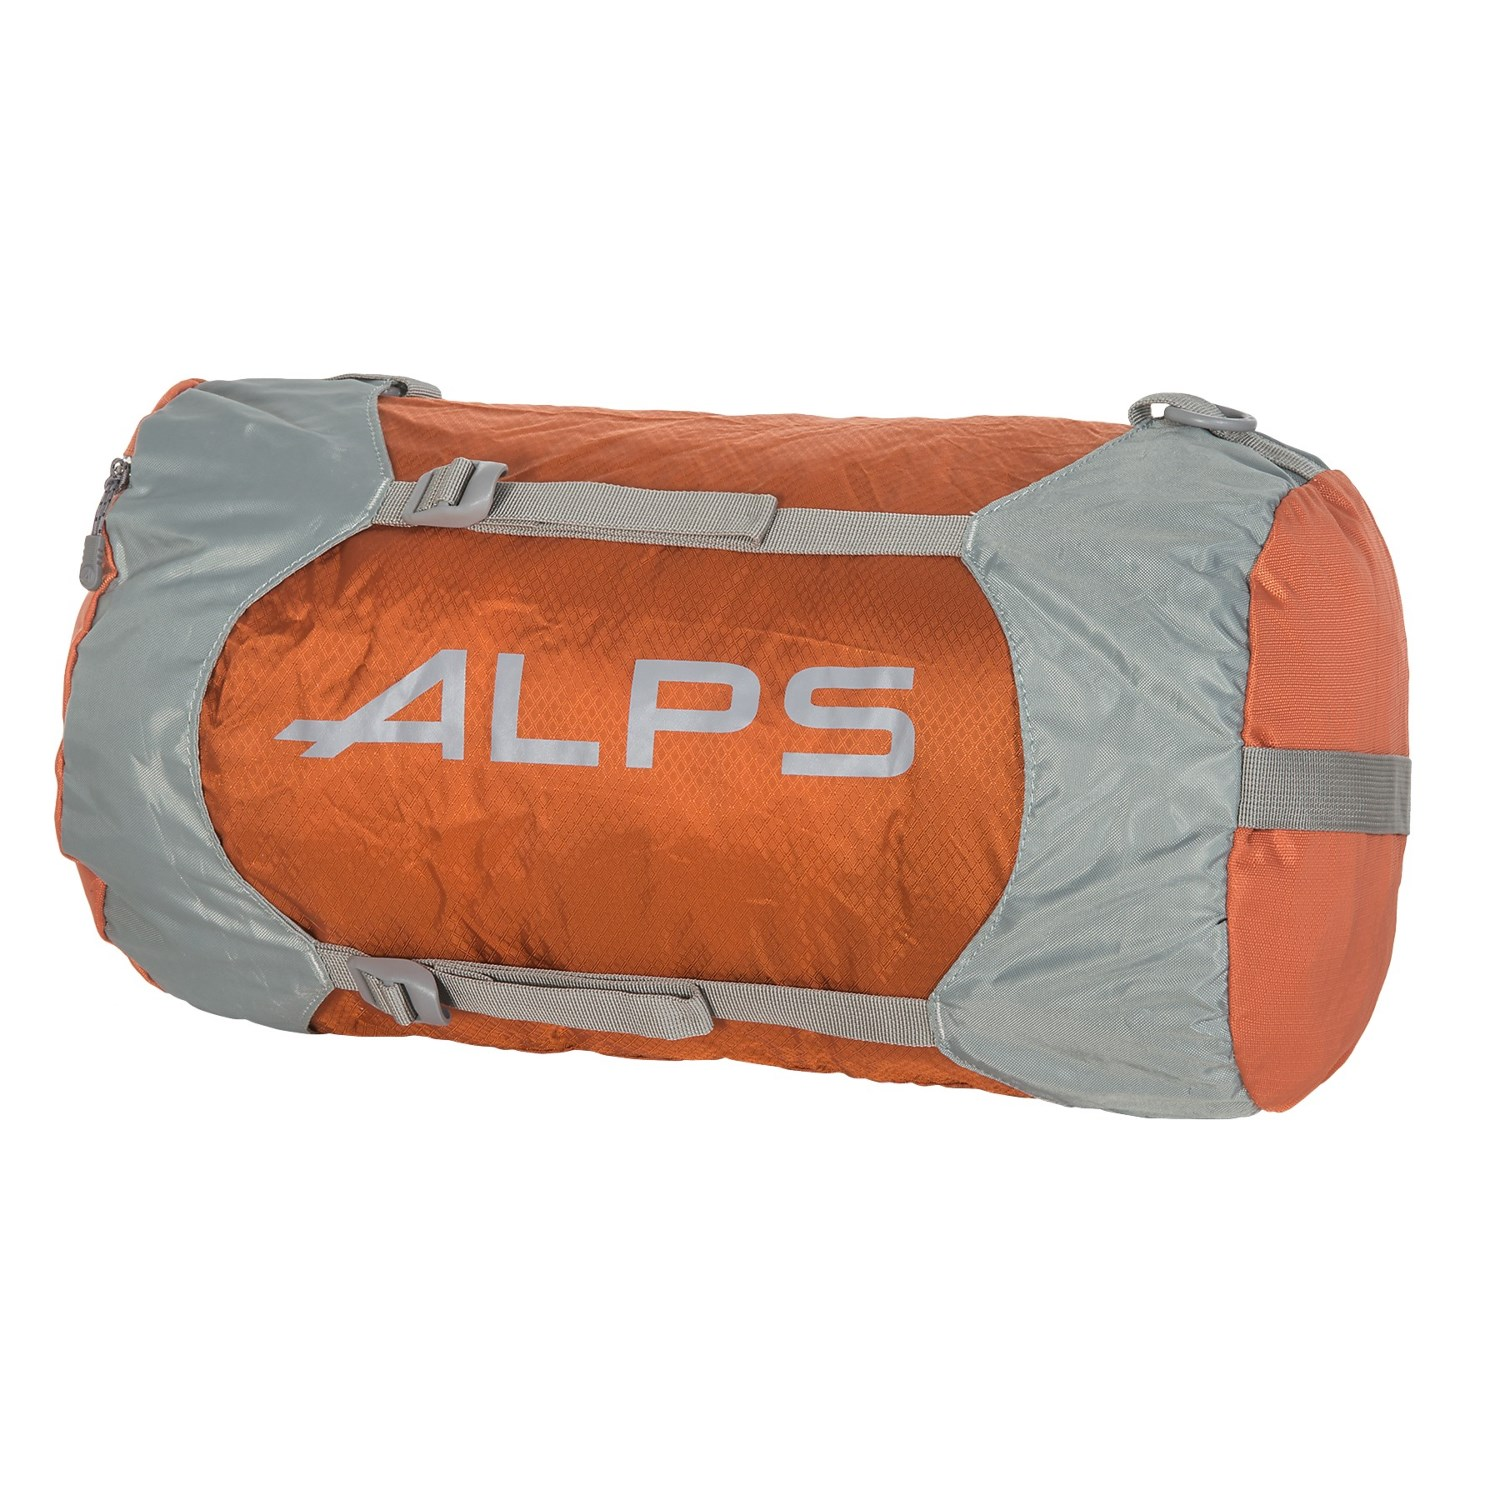 9d55d02a9a52 ALPS Mountaineering Compression Stuff Sack - Medium